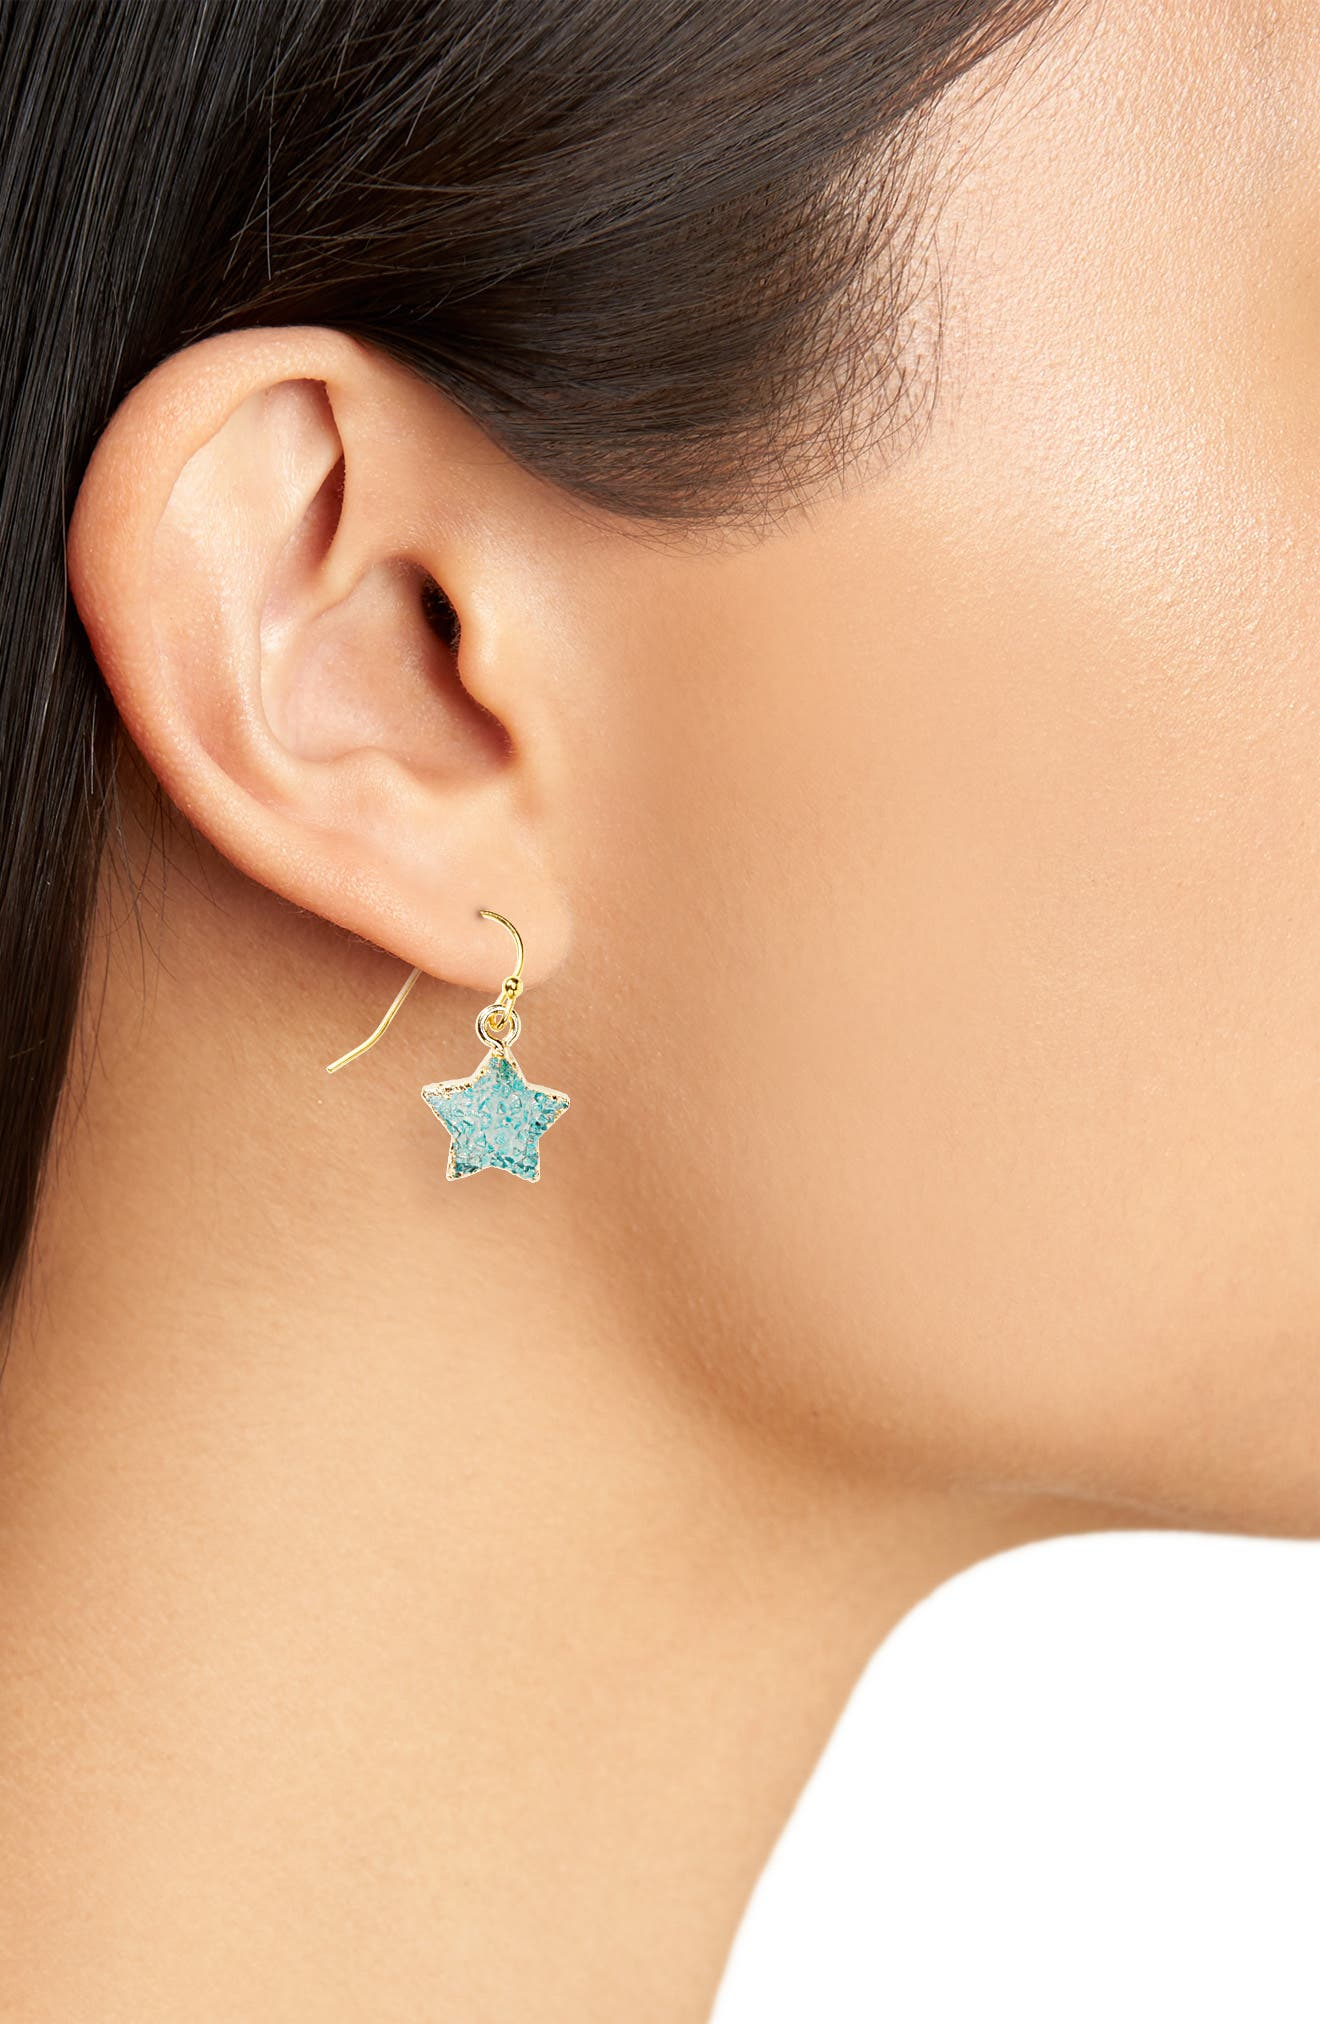 Moon & Star Drusy Stone Earrings,                             Alternate thumbnail 2, color,                             410